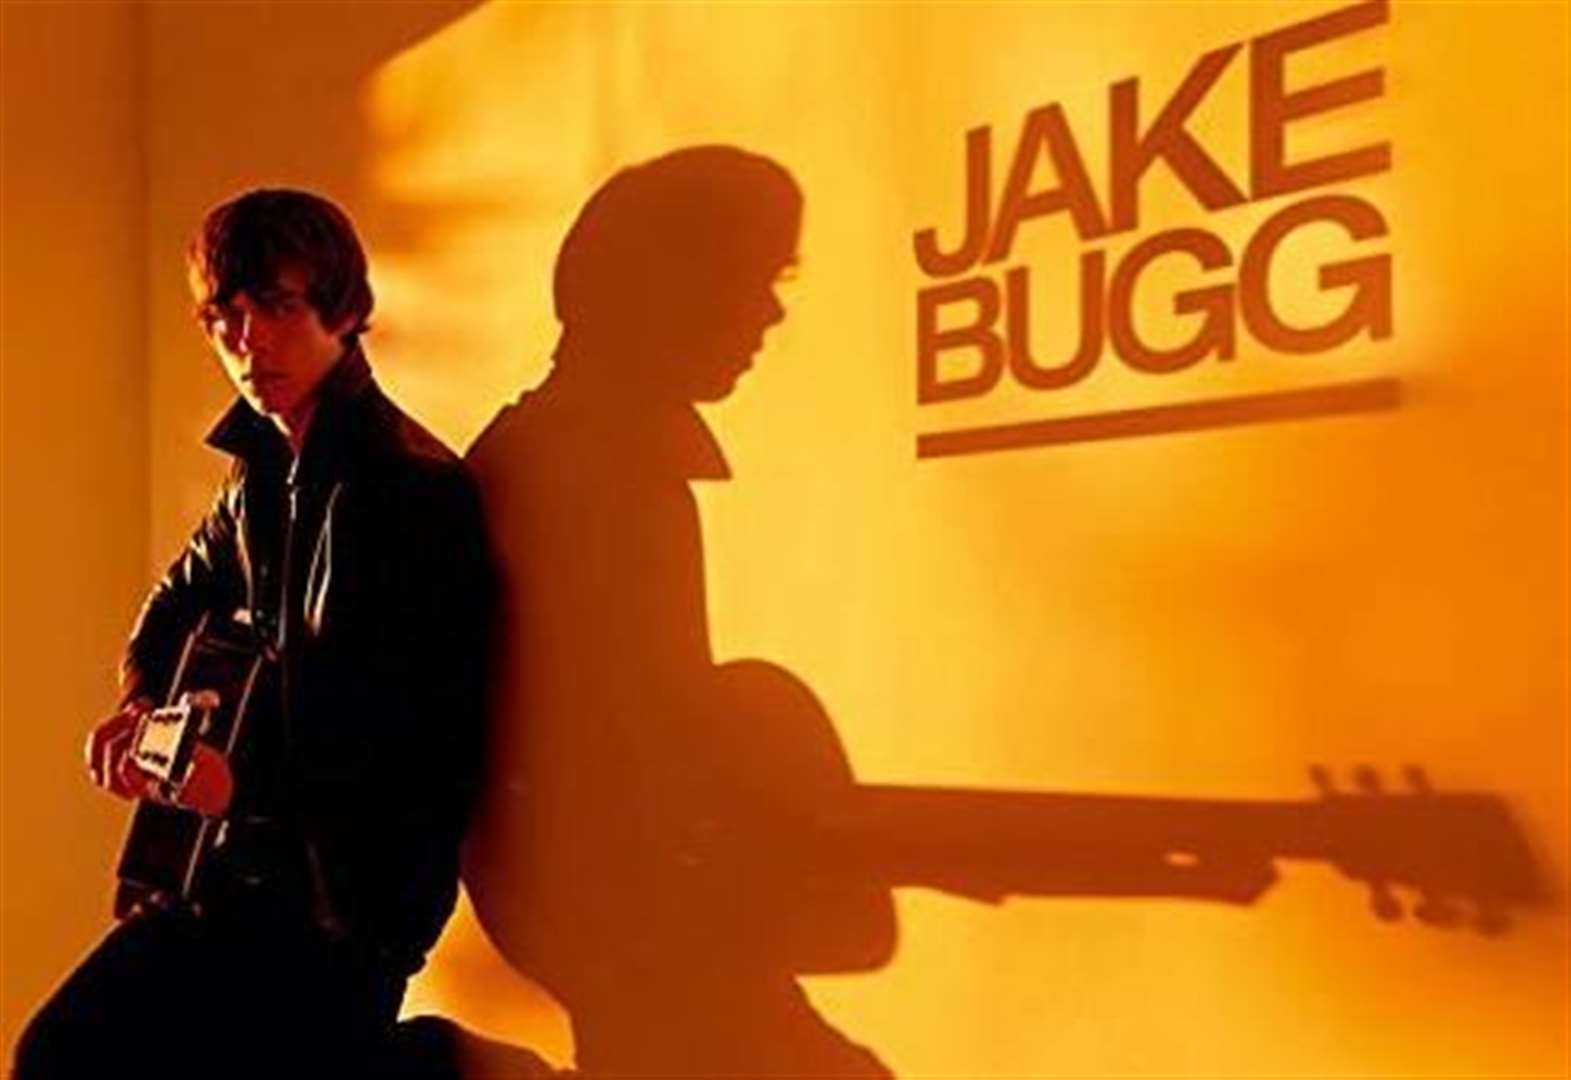 Jake Bugg joins major music festival line-up